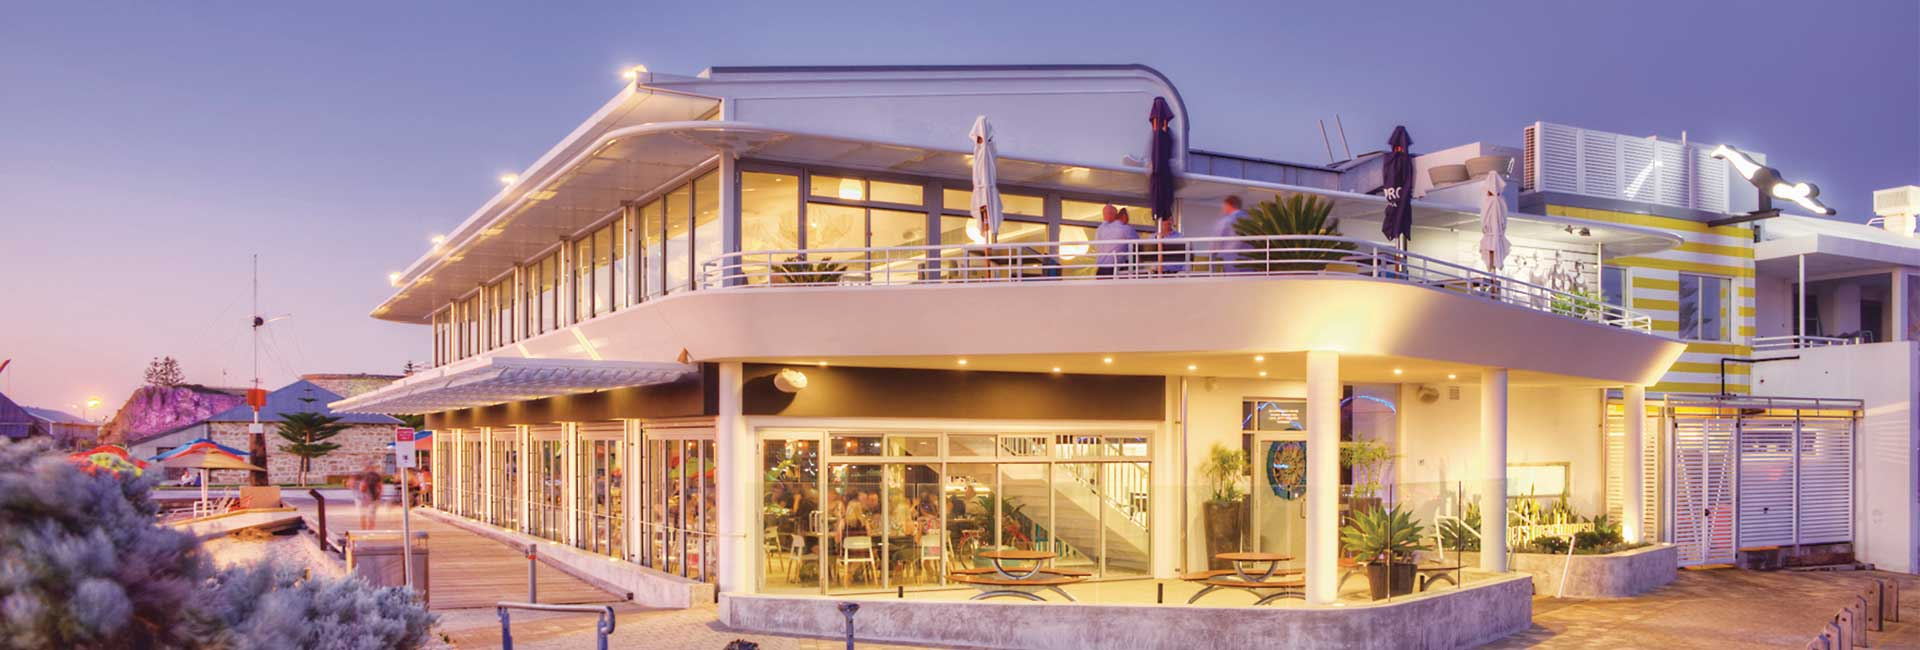 Bathers Beach House - Fremantle Restaurant and Bar